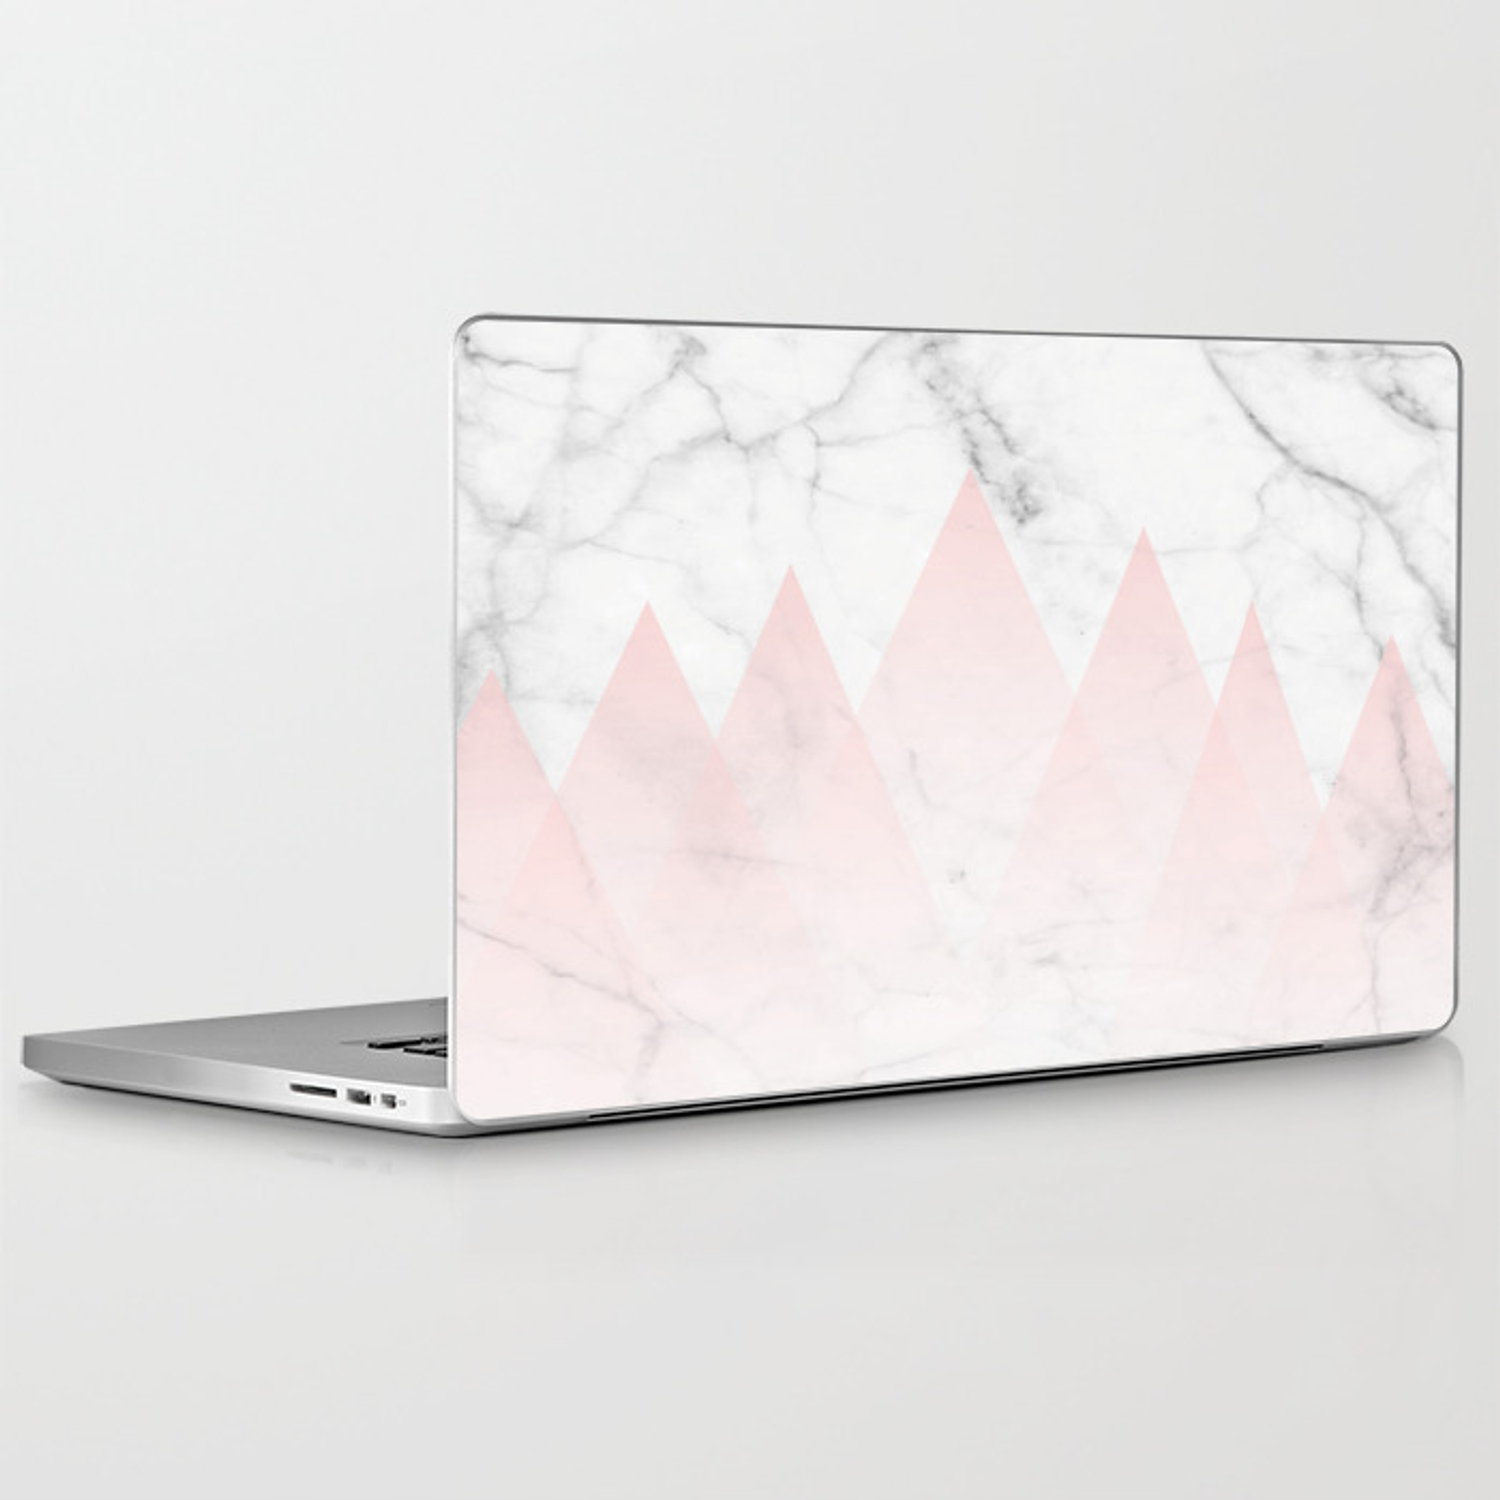 White Marble Background Pink Abstract Triangle Mountains Laptop Ipad Skin By 5mmpaper Society6